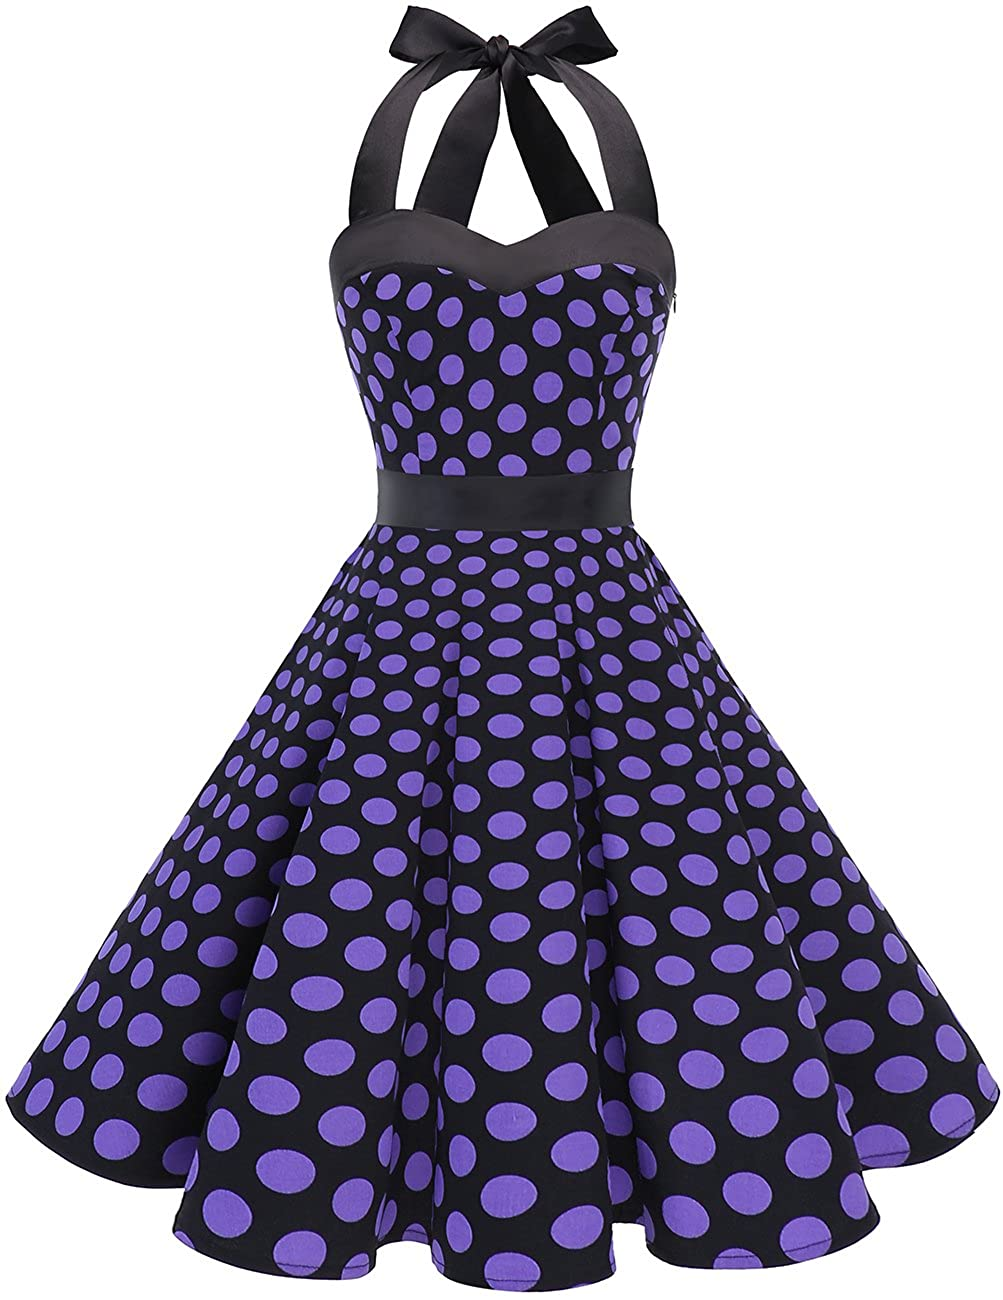 TALLA S. Dresstells® Halter 50s Rockabilly Polka Dots Audrey Dress Retro Cocktail Dress Black Purple Dot S